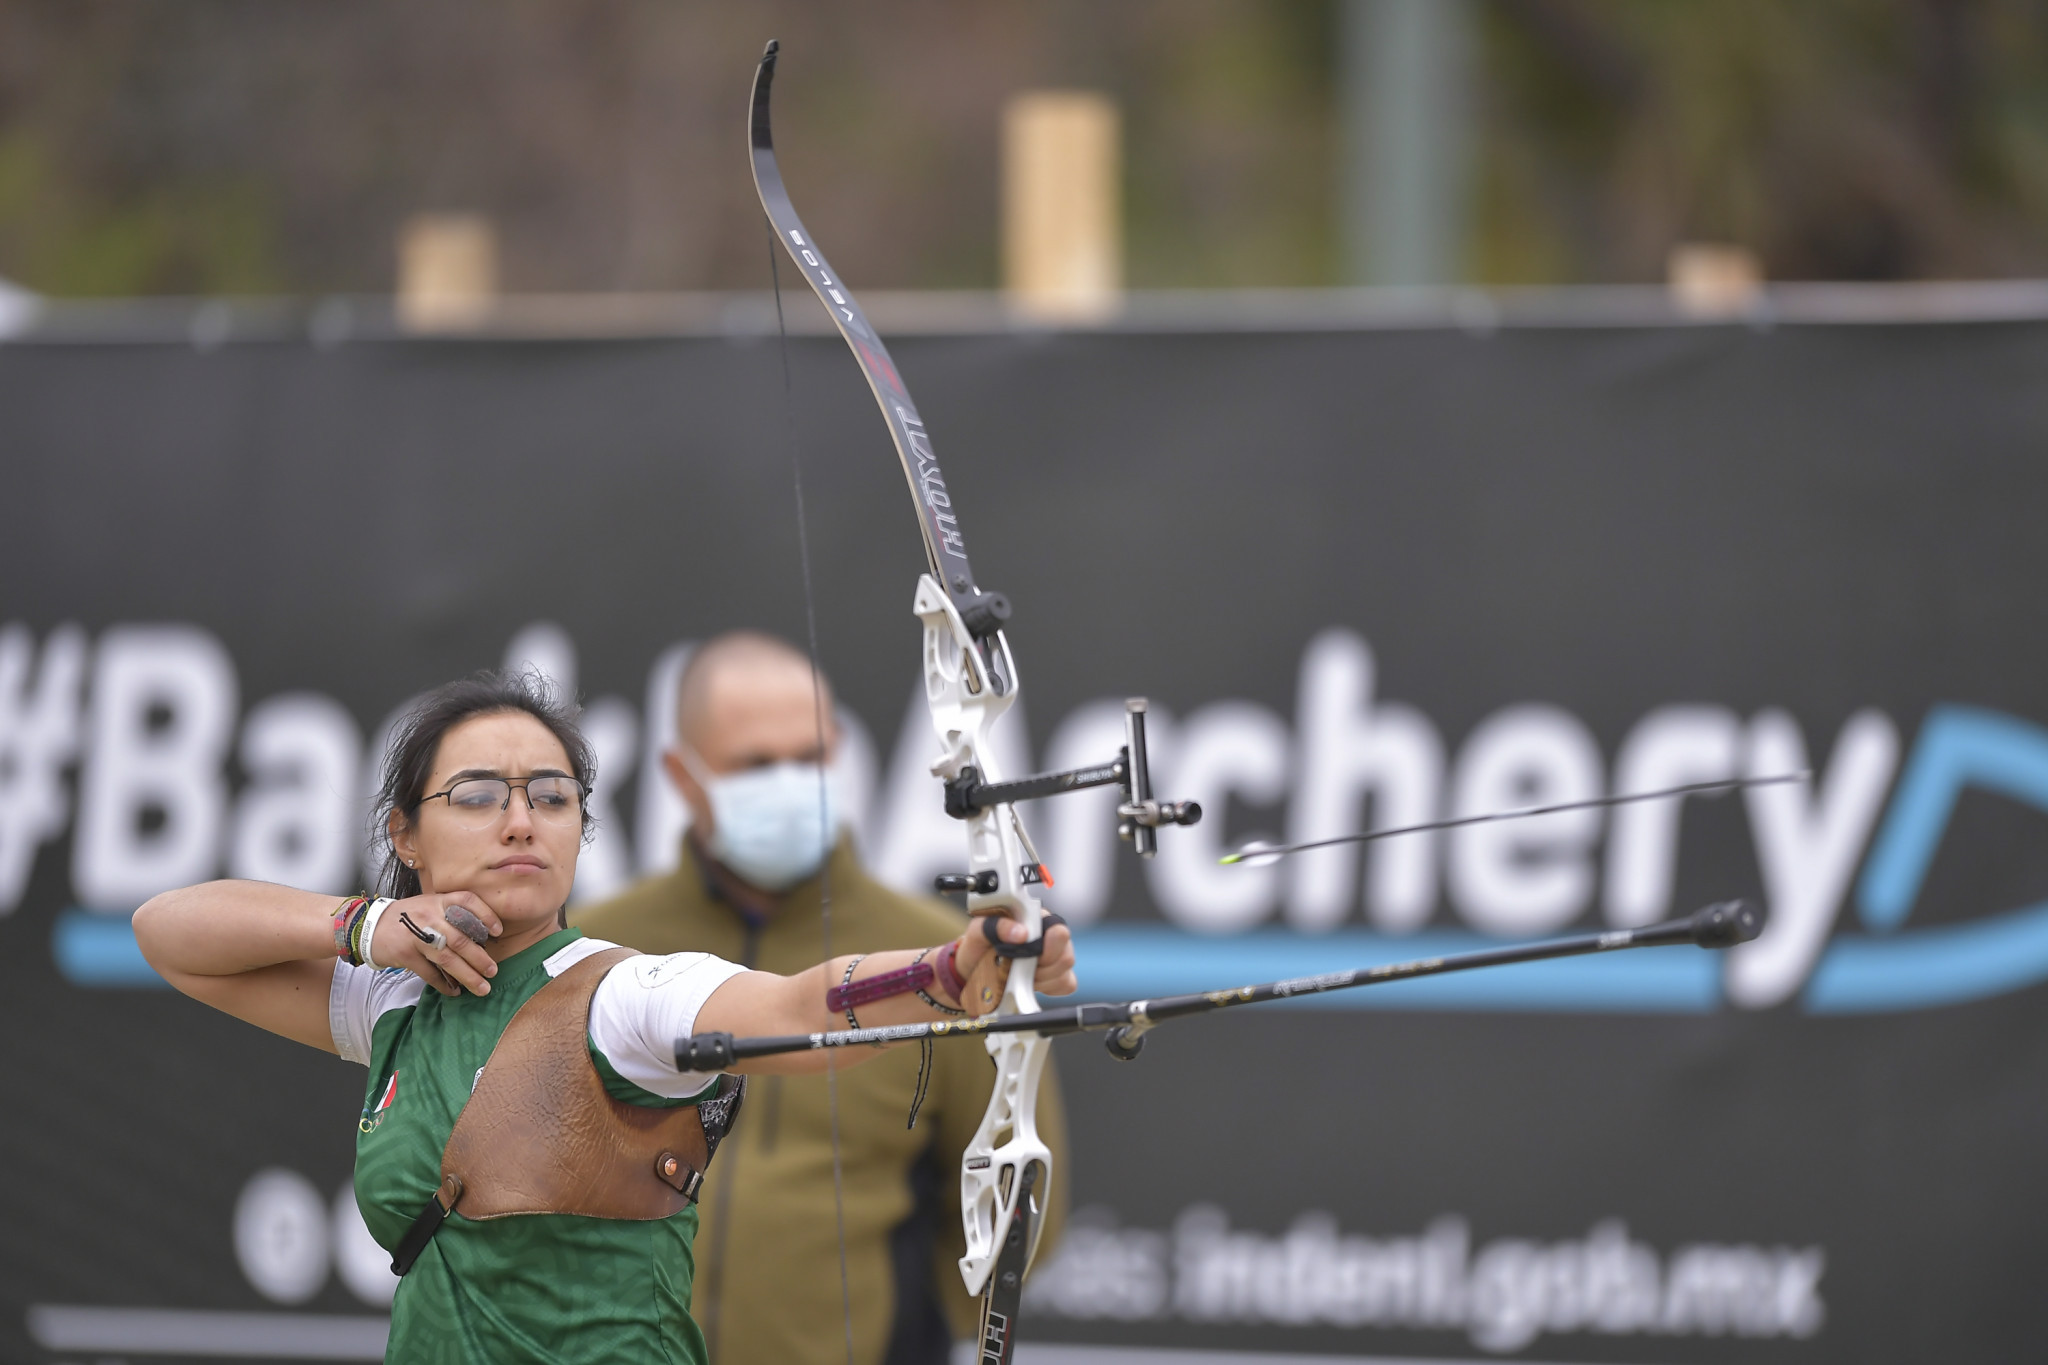 Germany and Mexico set up mixed team recurve final showdown at Archery World Cup